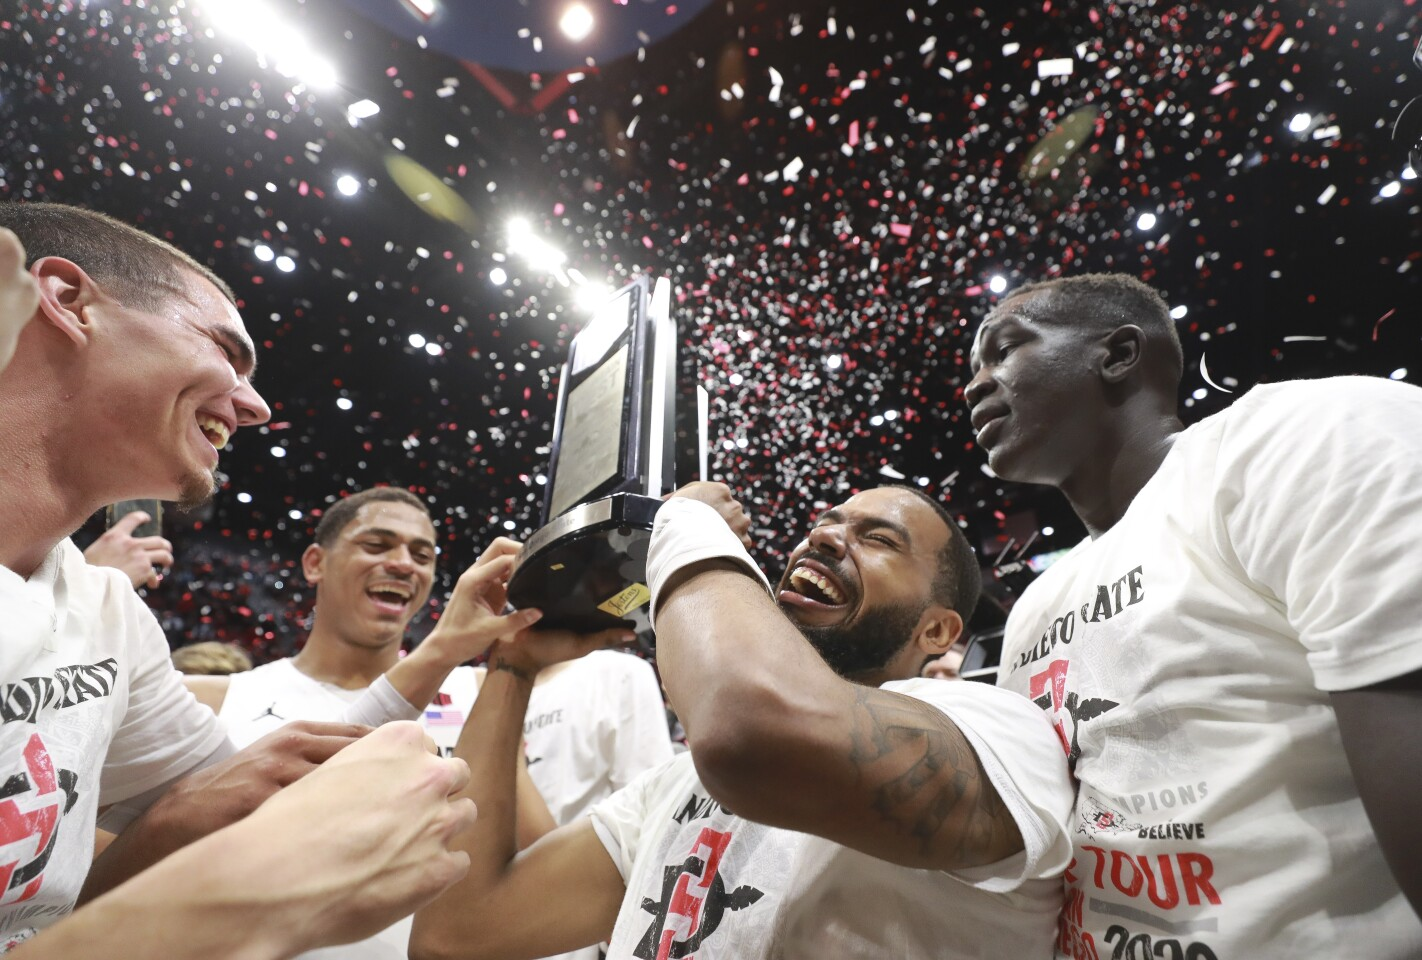 The Aztecs' KJ Feagin holds up the Mountain West trophy as he, Caleb Giordano, left, Matt Mitchell, back left, Aguek Arop, right, and fellow teammates celebrate after the Aztecs defeated New Mexico 82-59 at the Viejas Arena on Tuesday, February 11, 2020 in San Diego, California.